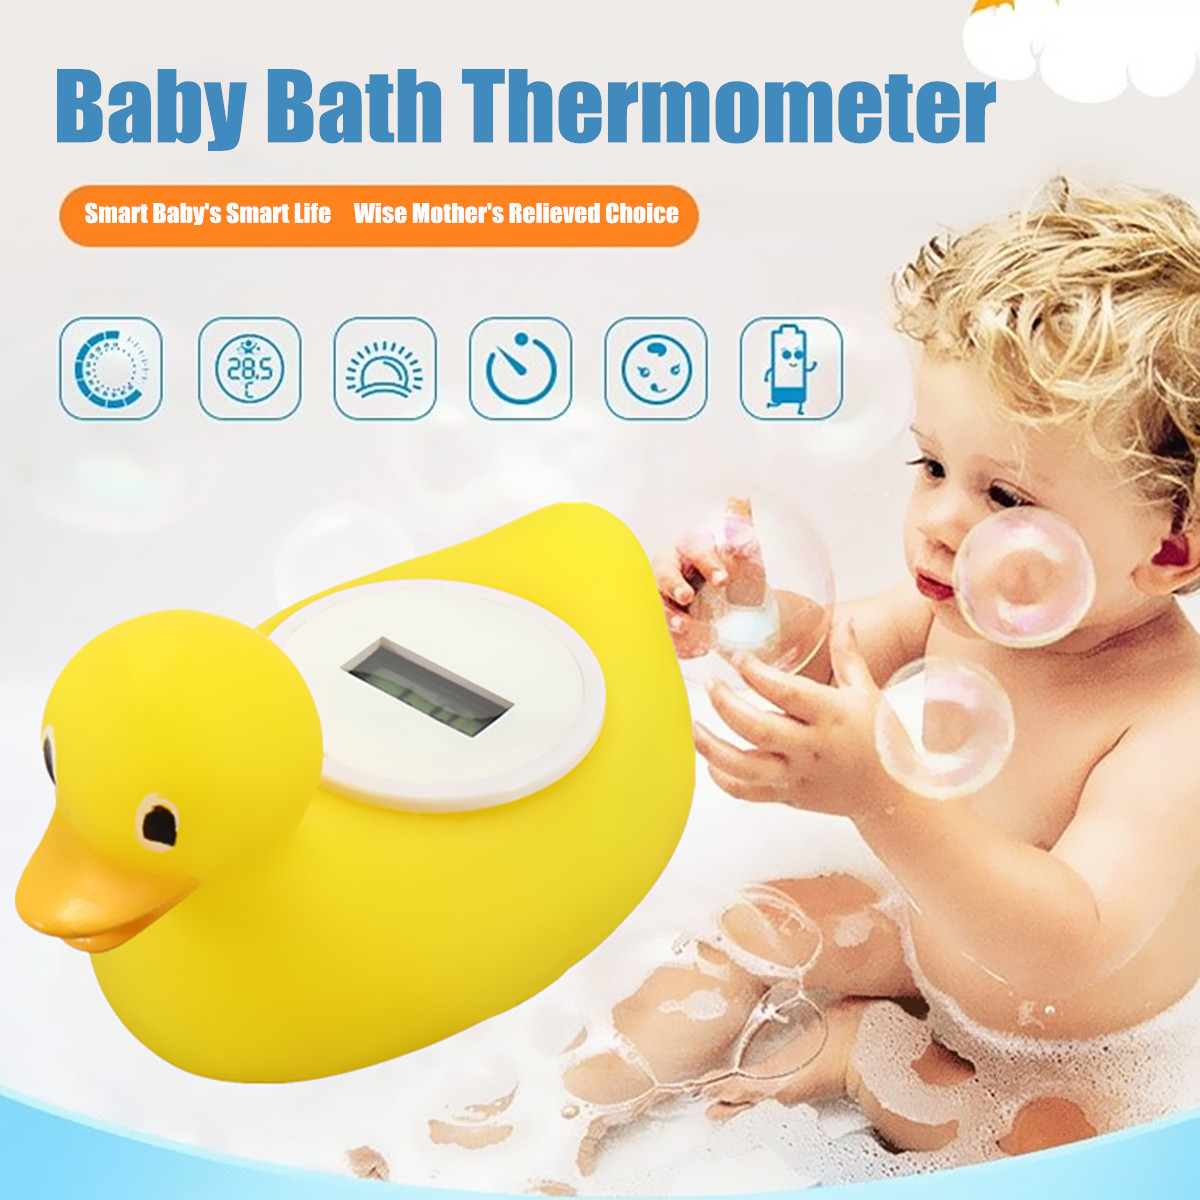 Adorable Digital Baby Bath Thermometer Water Sensor Safety Floating Duck Floating Toy Bathroom Fun